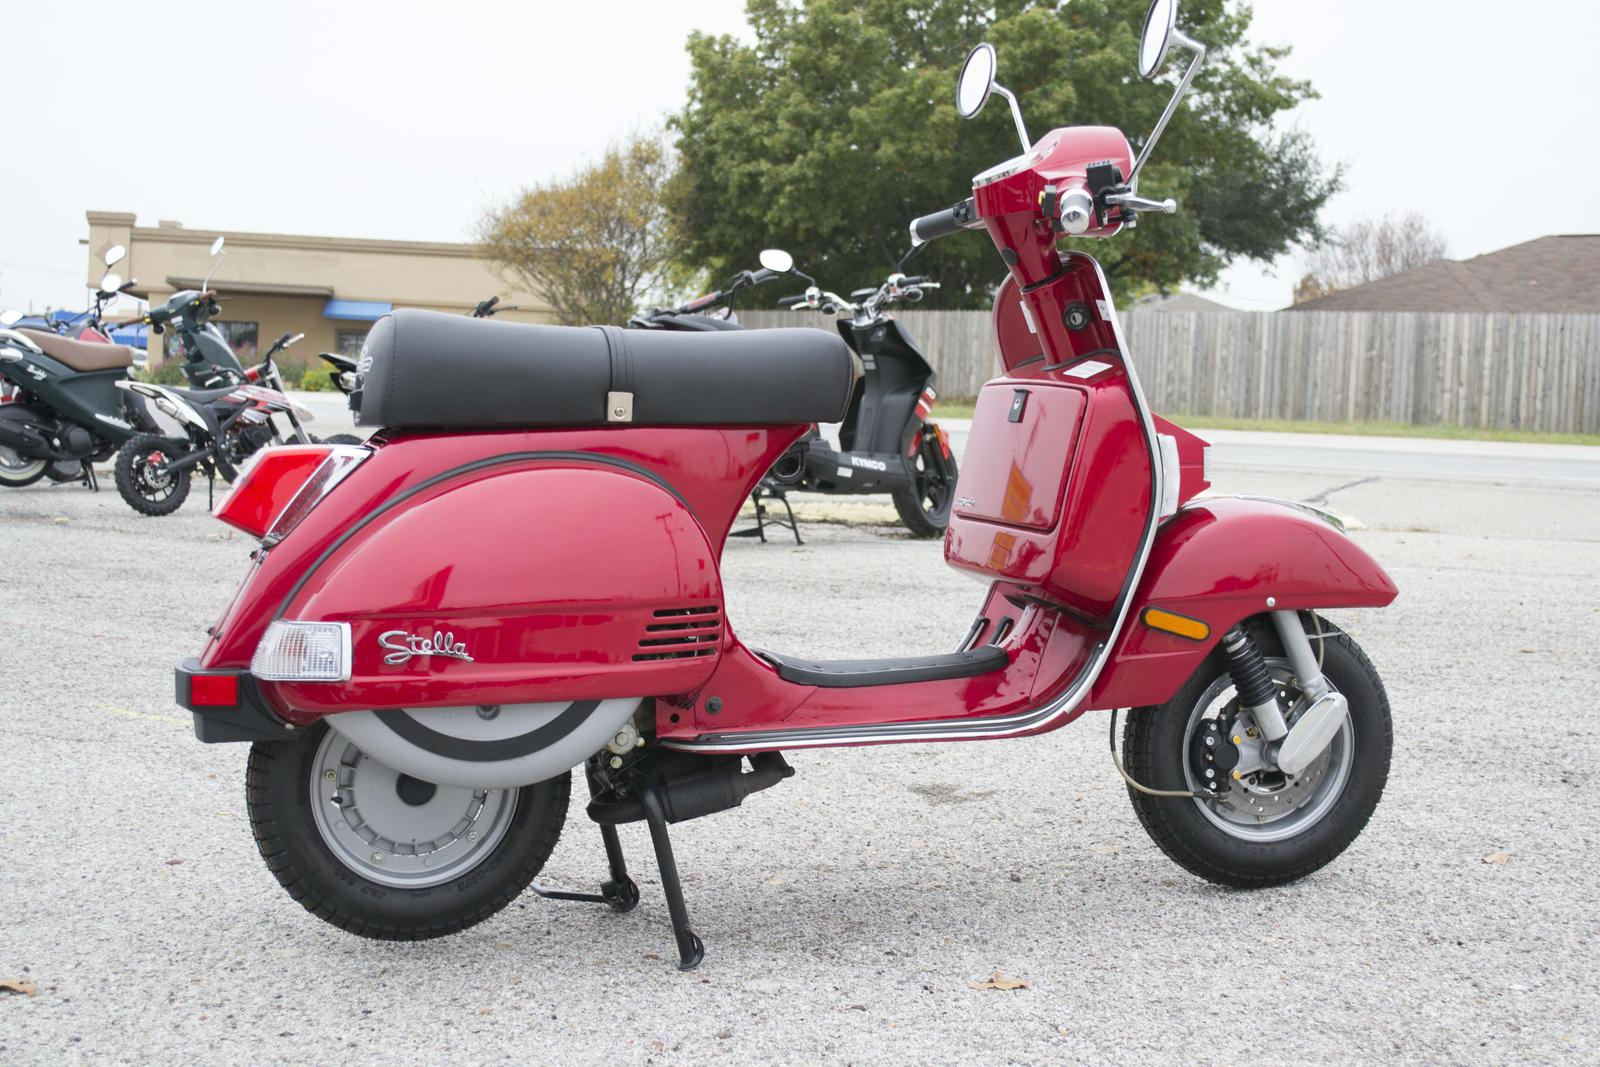 New Inventory from Genuine Scooters and GenZe Moxie Scooters